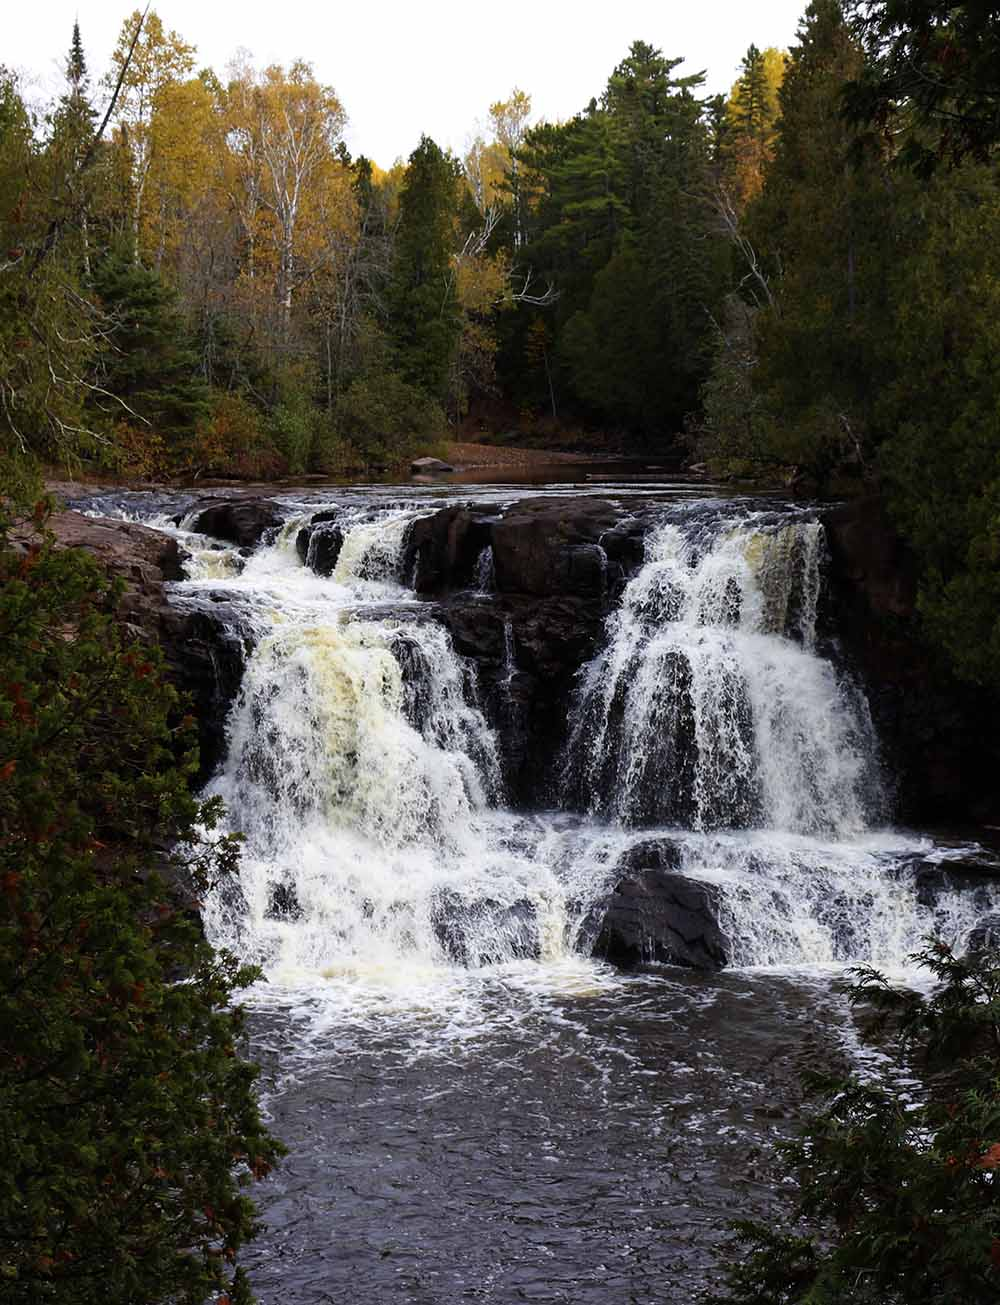 Minnesota waterfalls - Gooseberry Falls - Here is a guide to 10 waterfalls you should be sure to see when visiting the North Shore of Lake Superior in Minnesota